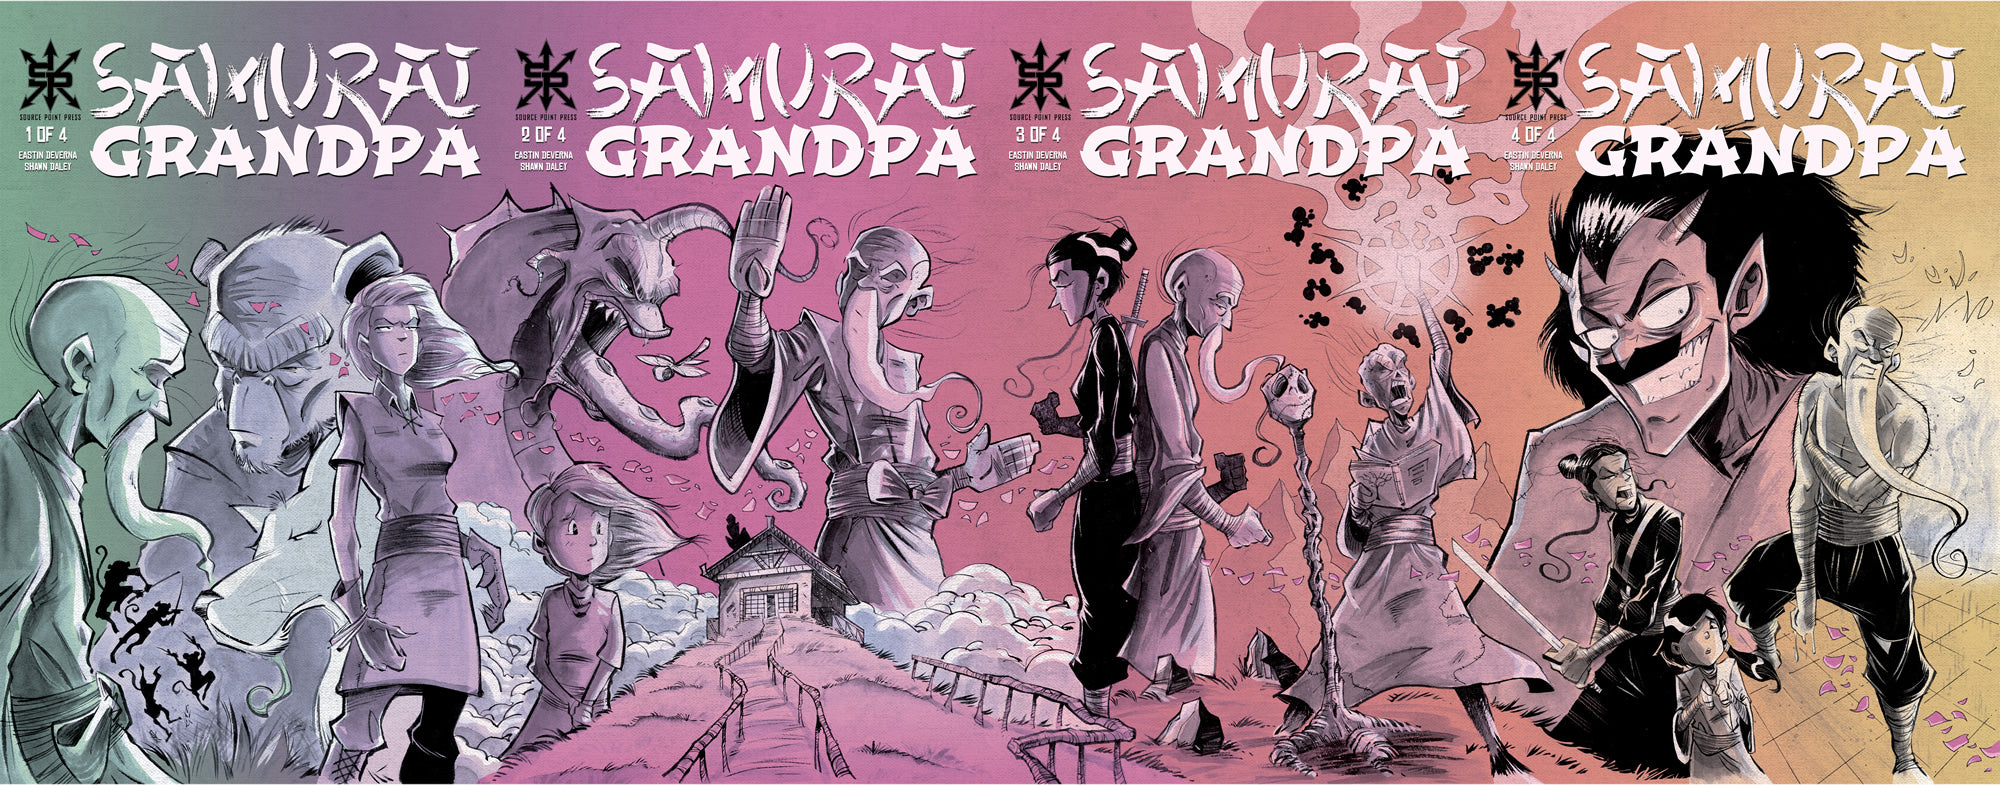 Samurai Grandpa 1-4, CGC 9.8 - Connecting Variants, Trade Dress